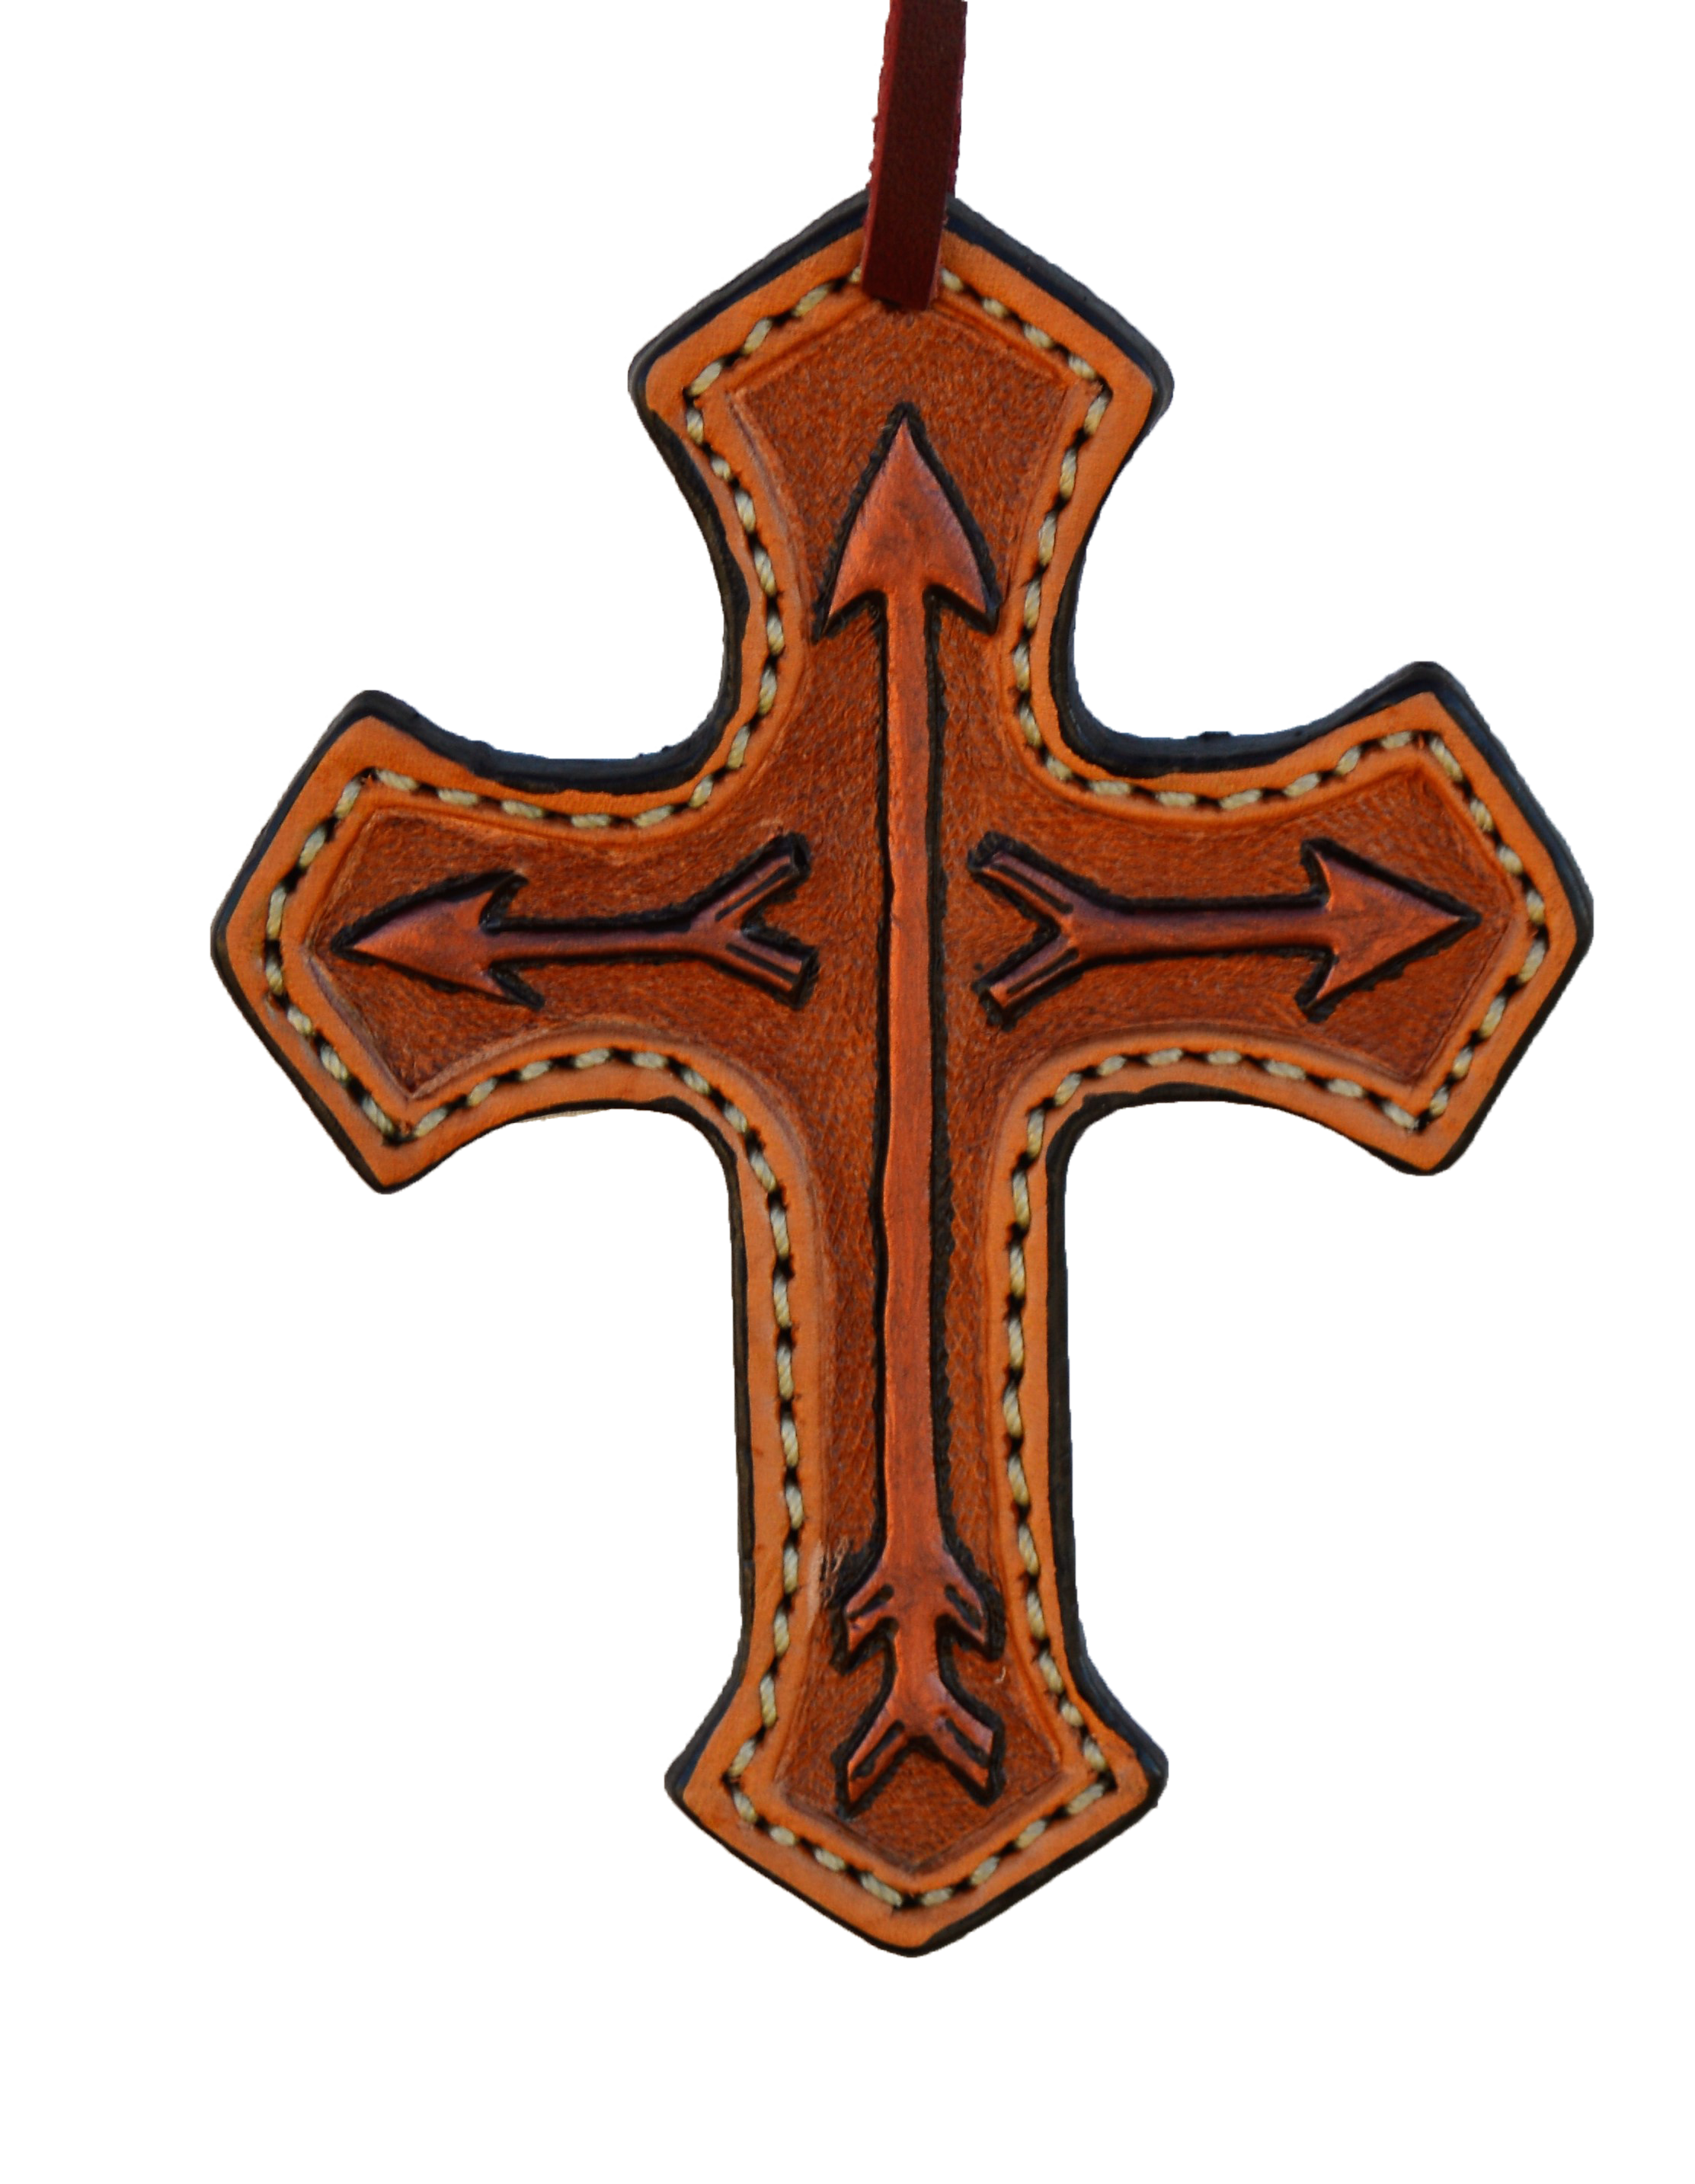 108-RA Cross in Toast Leather with painted arrows